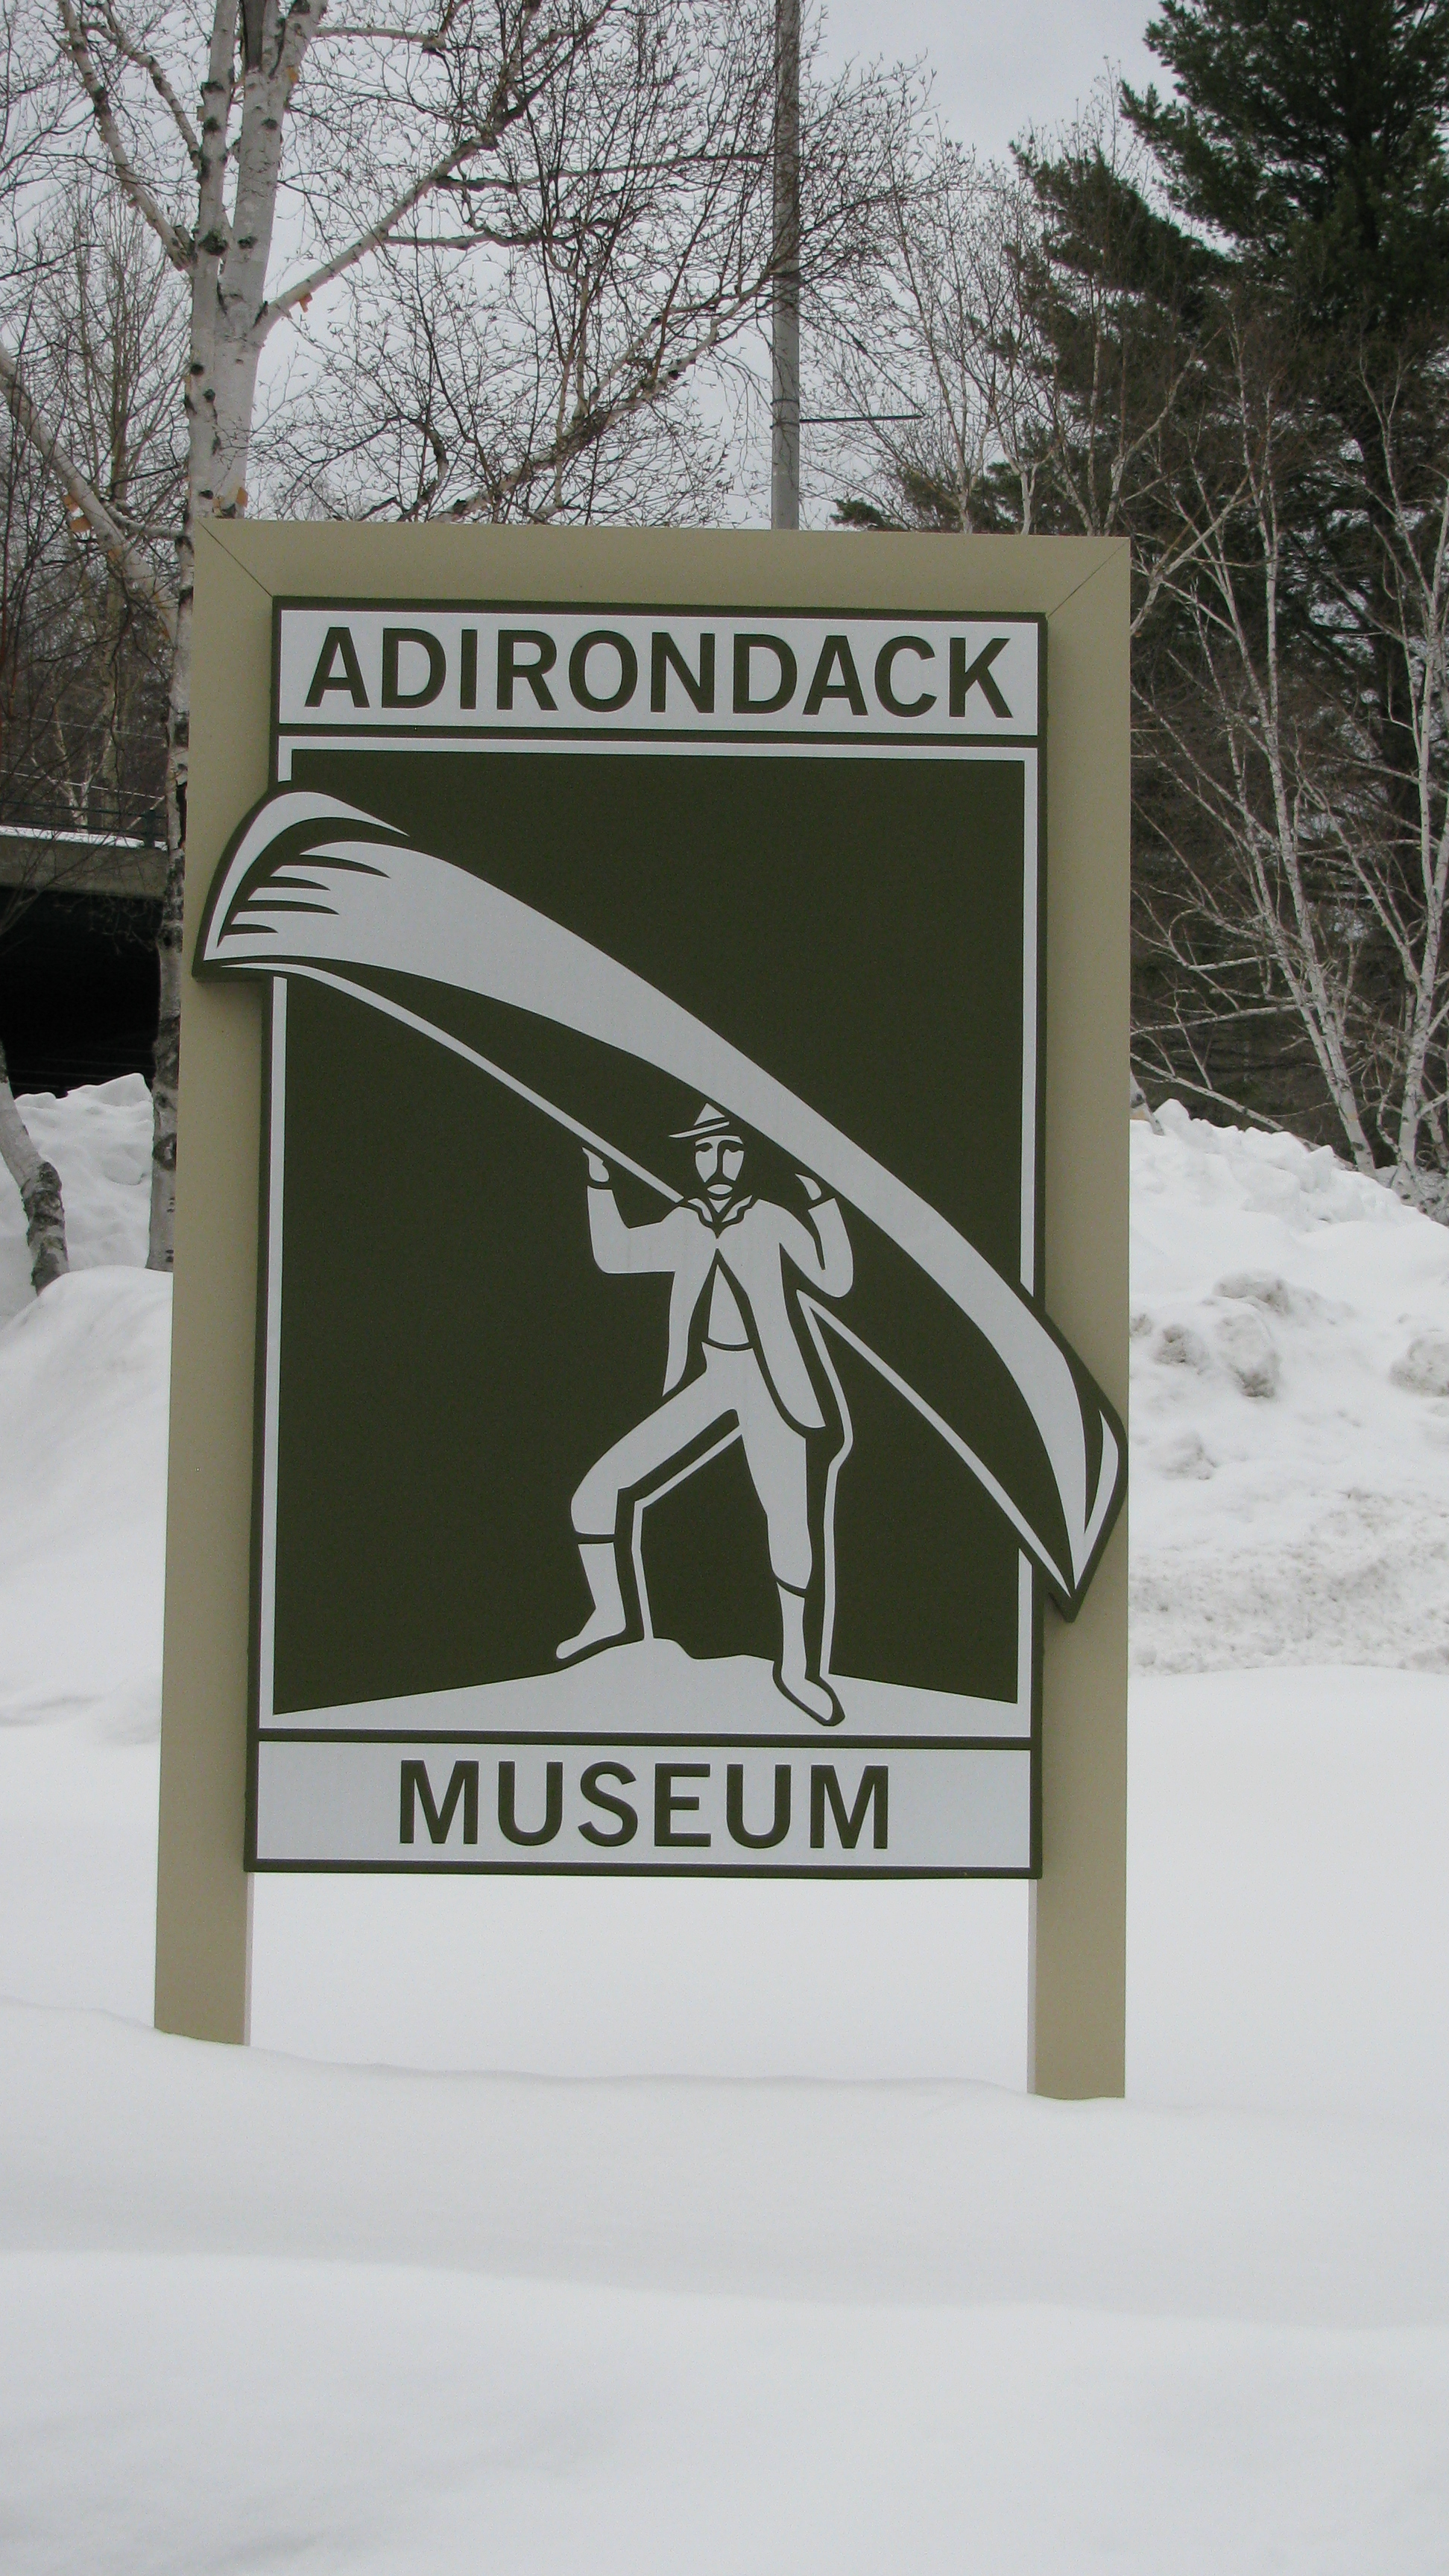 Adirondack.net - Specials and Coupons In The Adirondacks